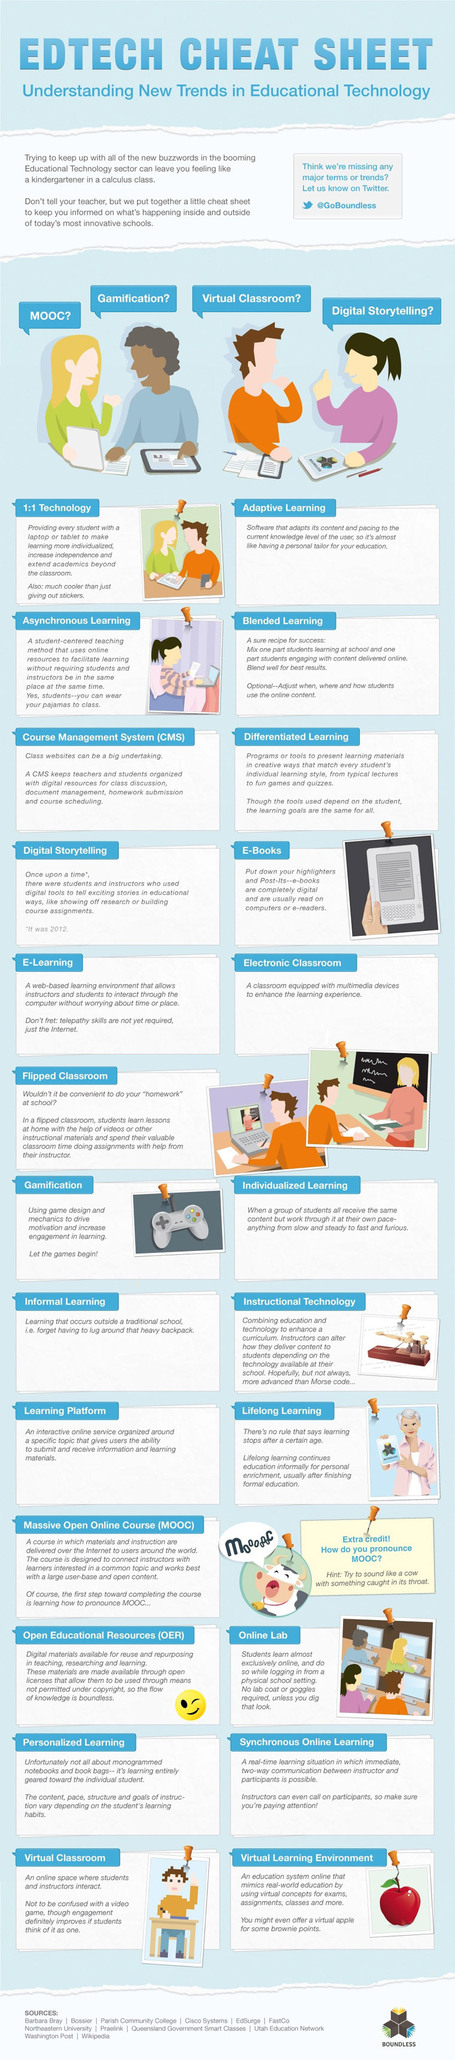 24 Ed-Tech Terms You Should Know [Infographic] | Engagement Based Teaching and Learning | Scoop.it